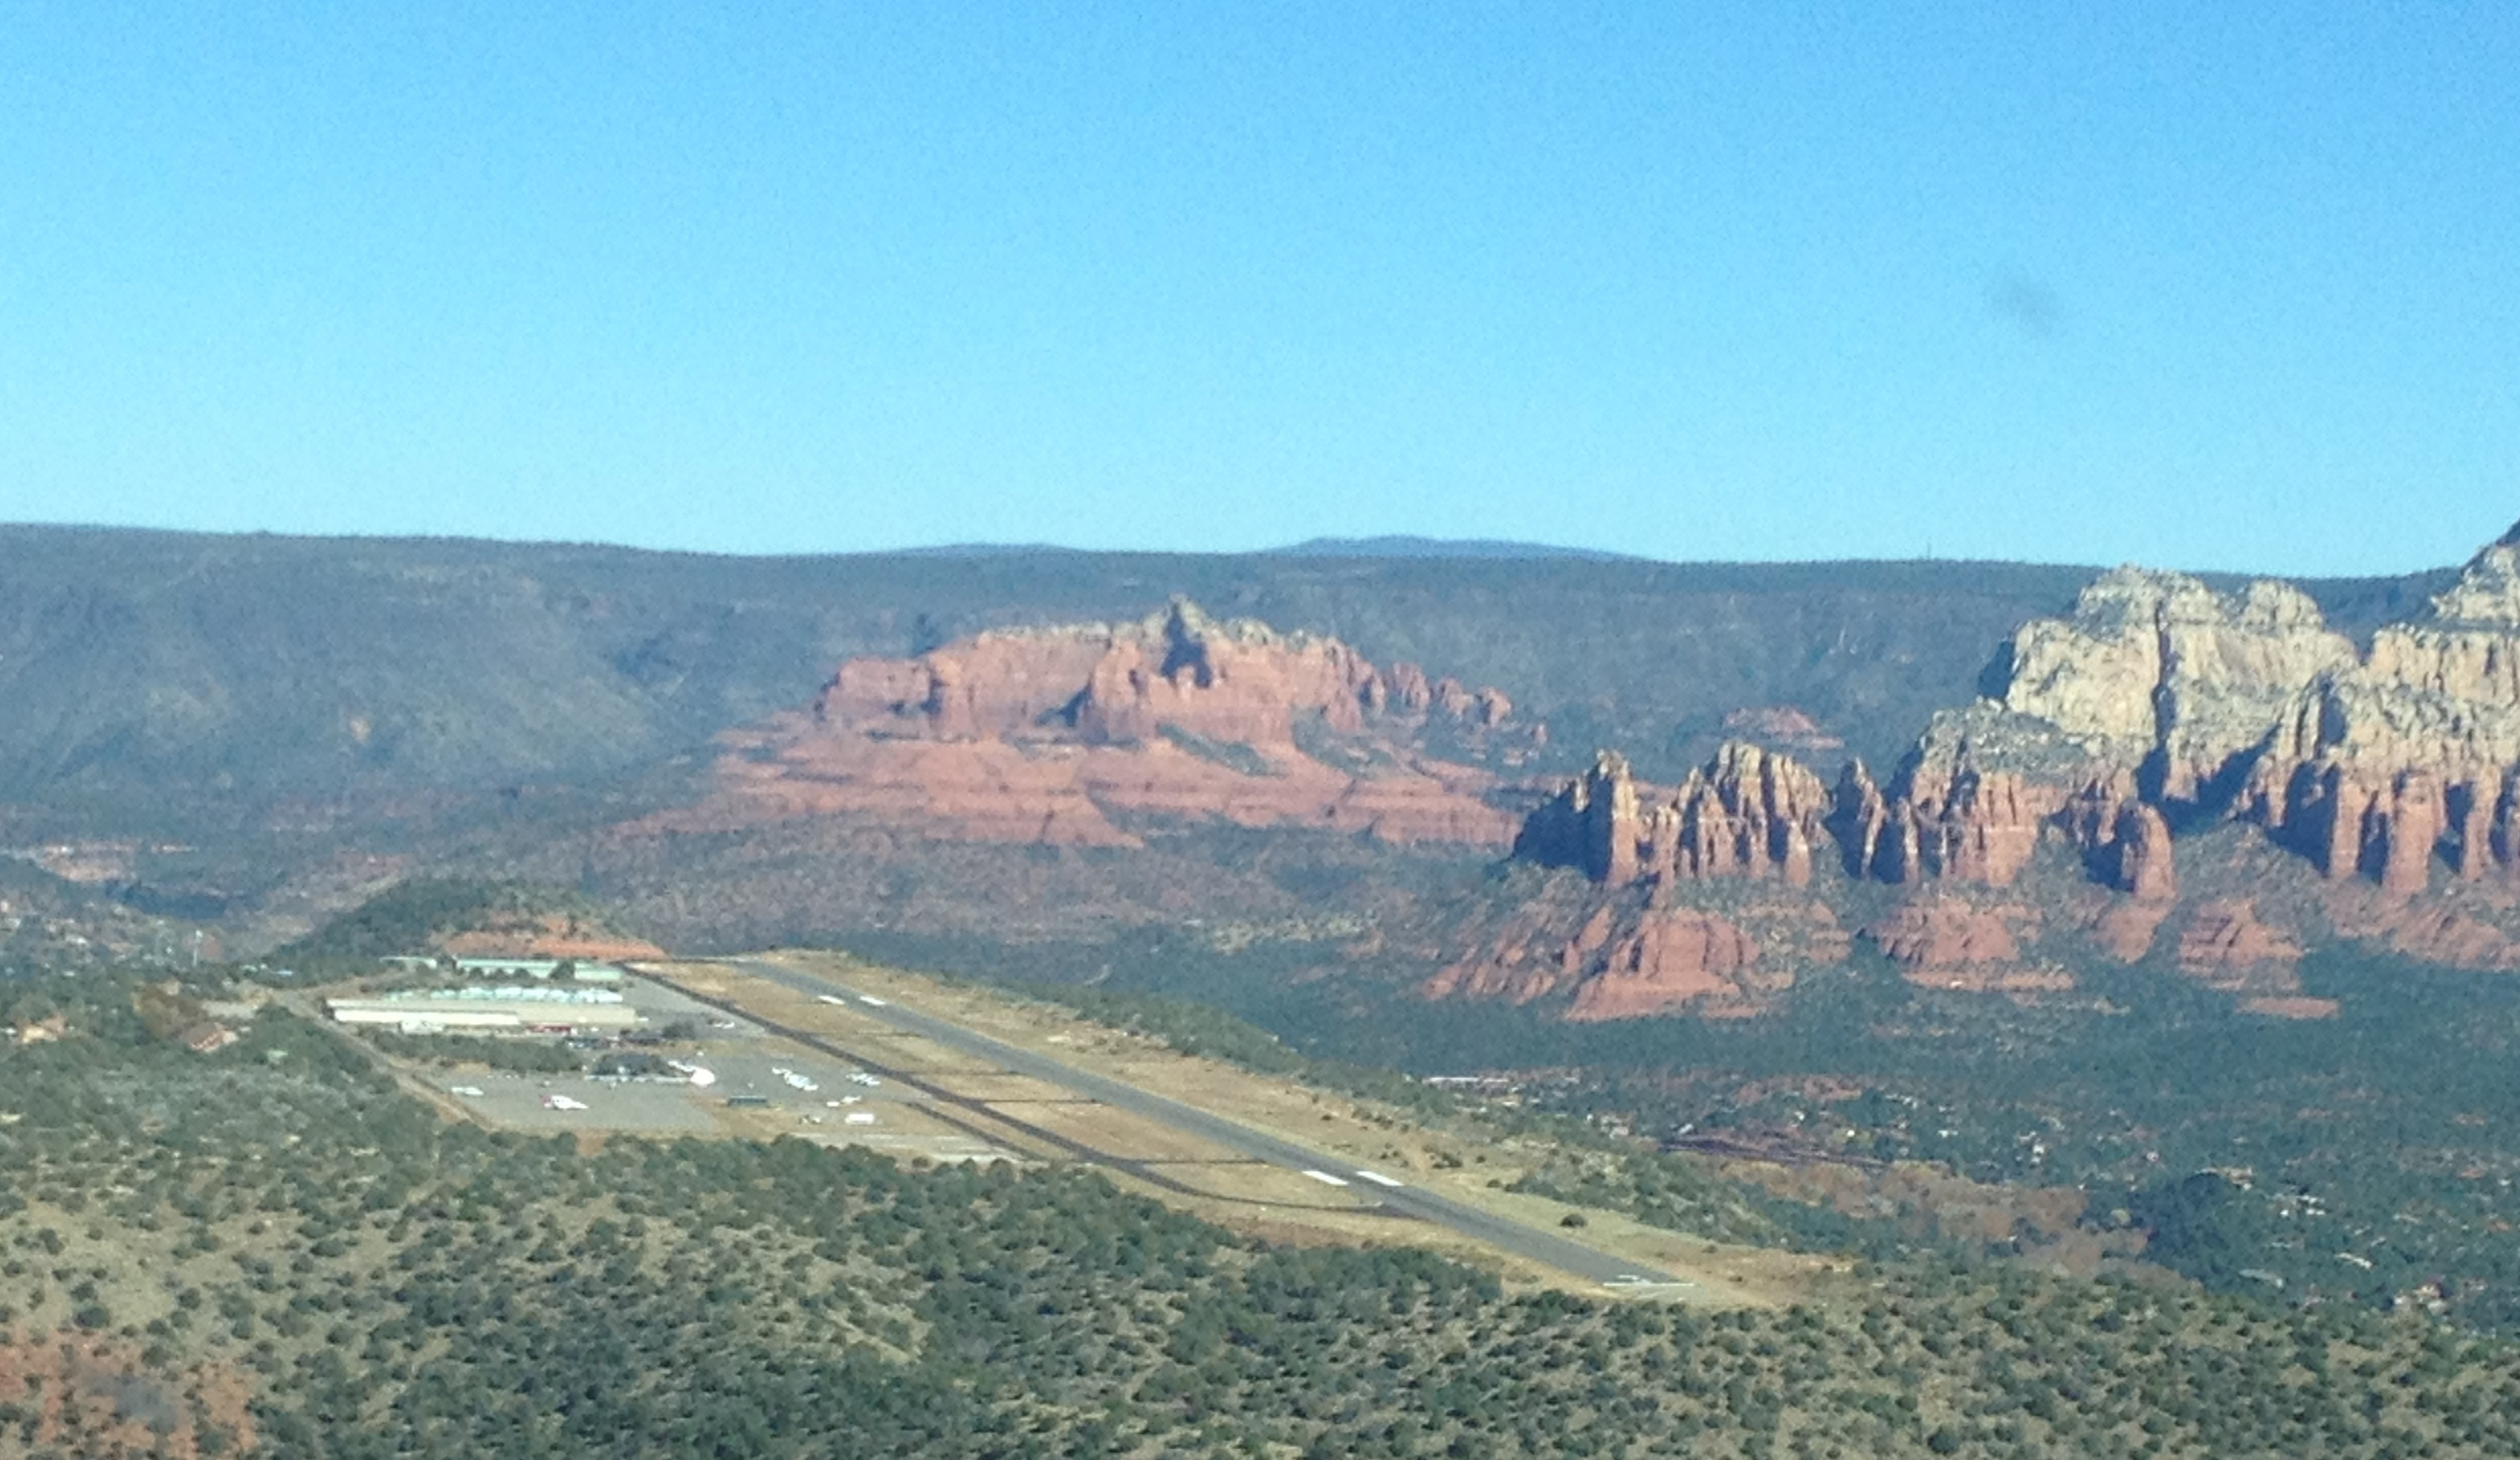 Tucson to Sedona – What a flight!